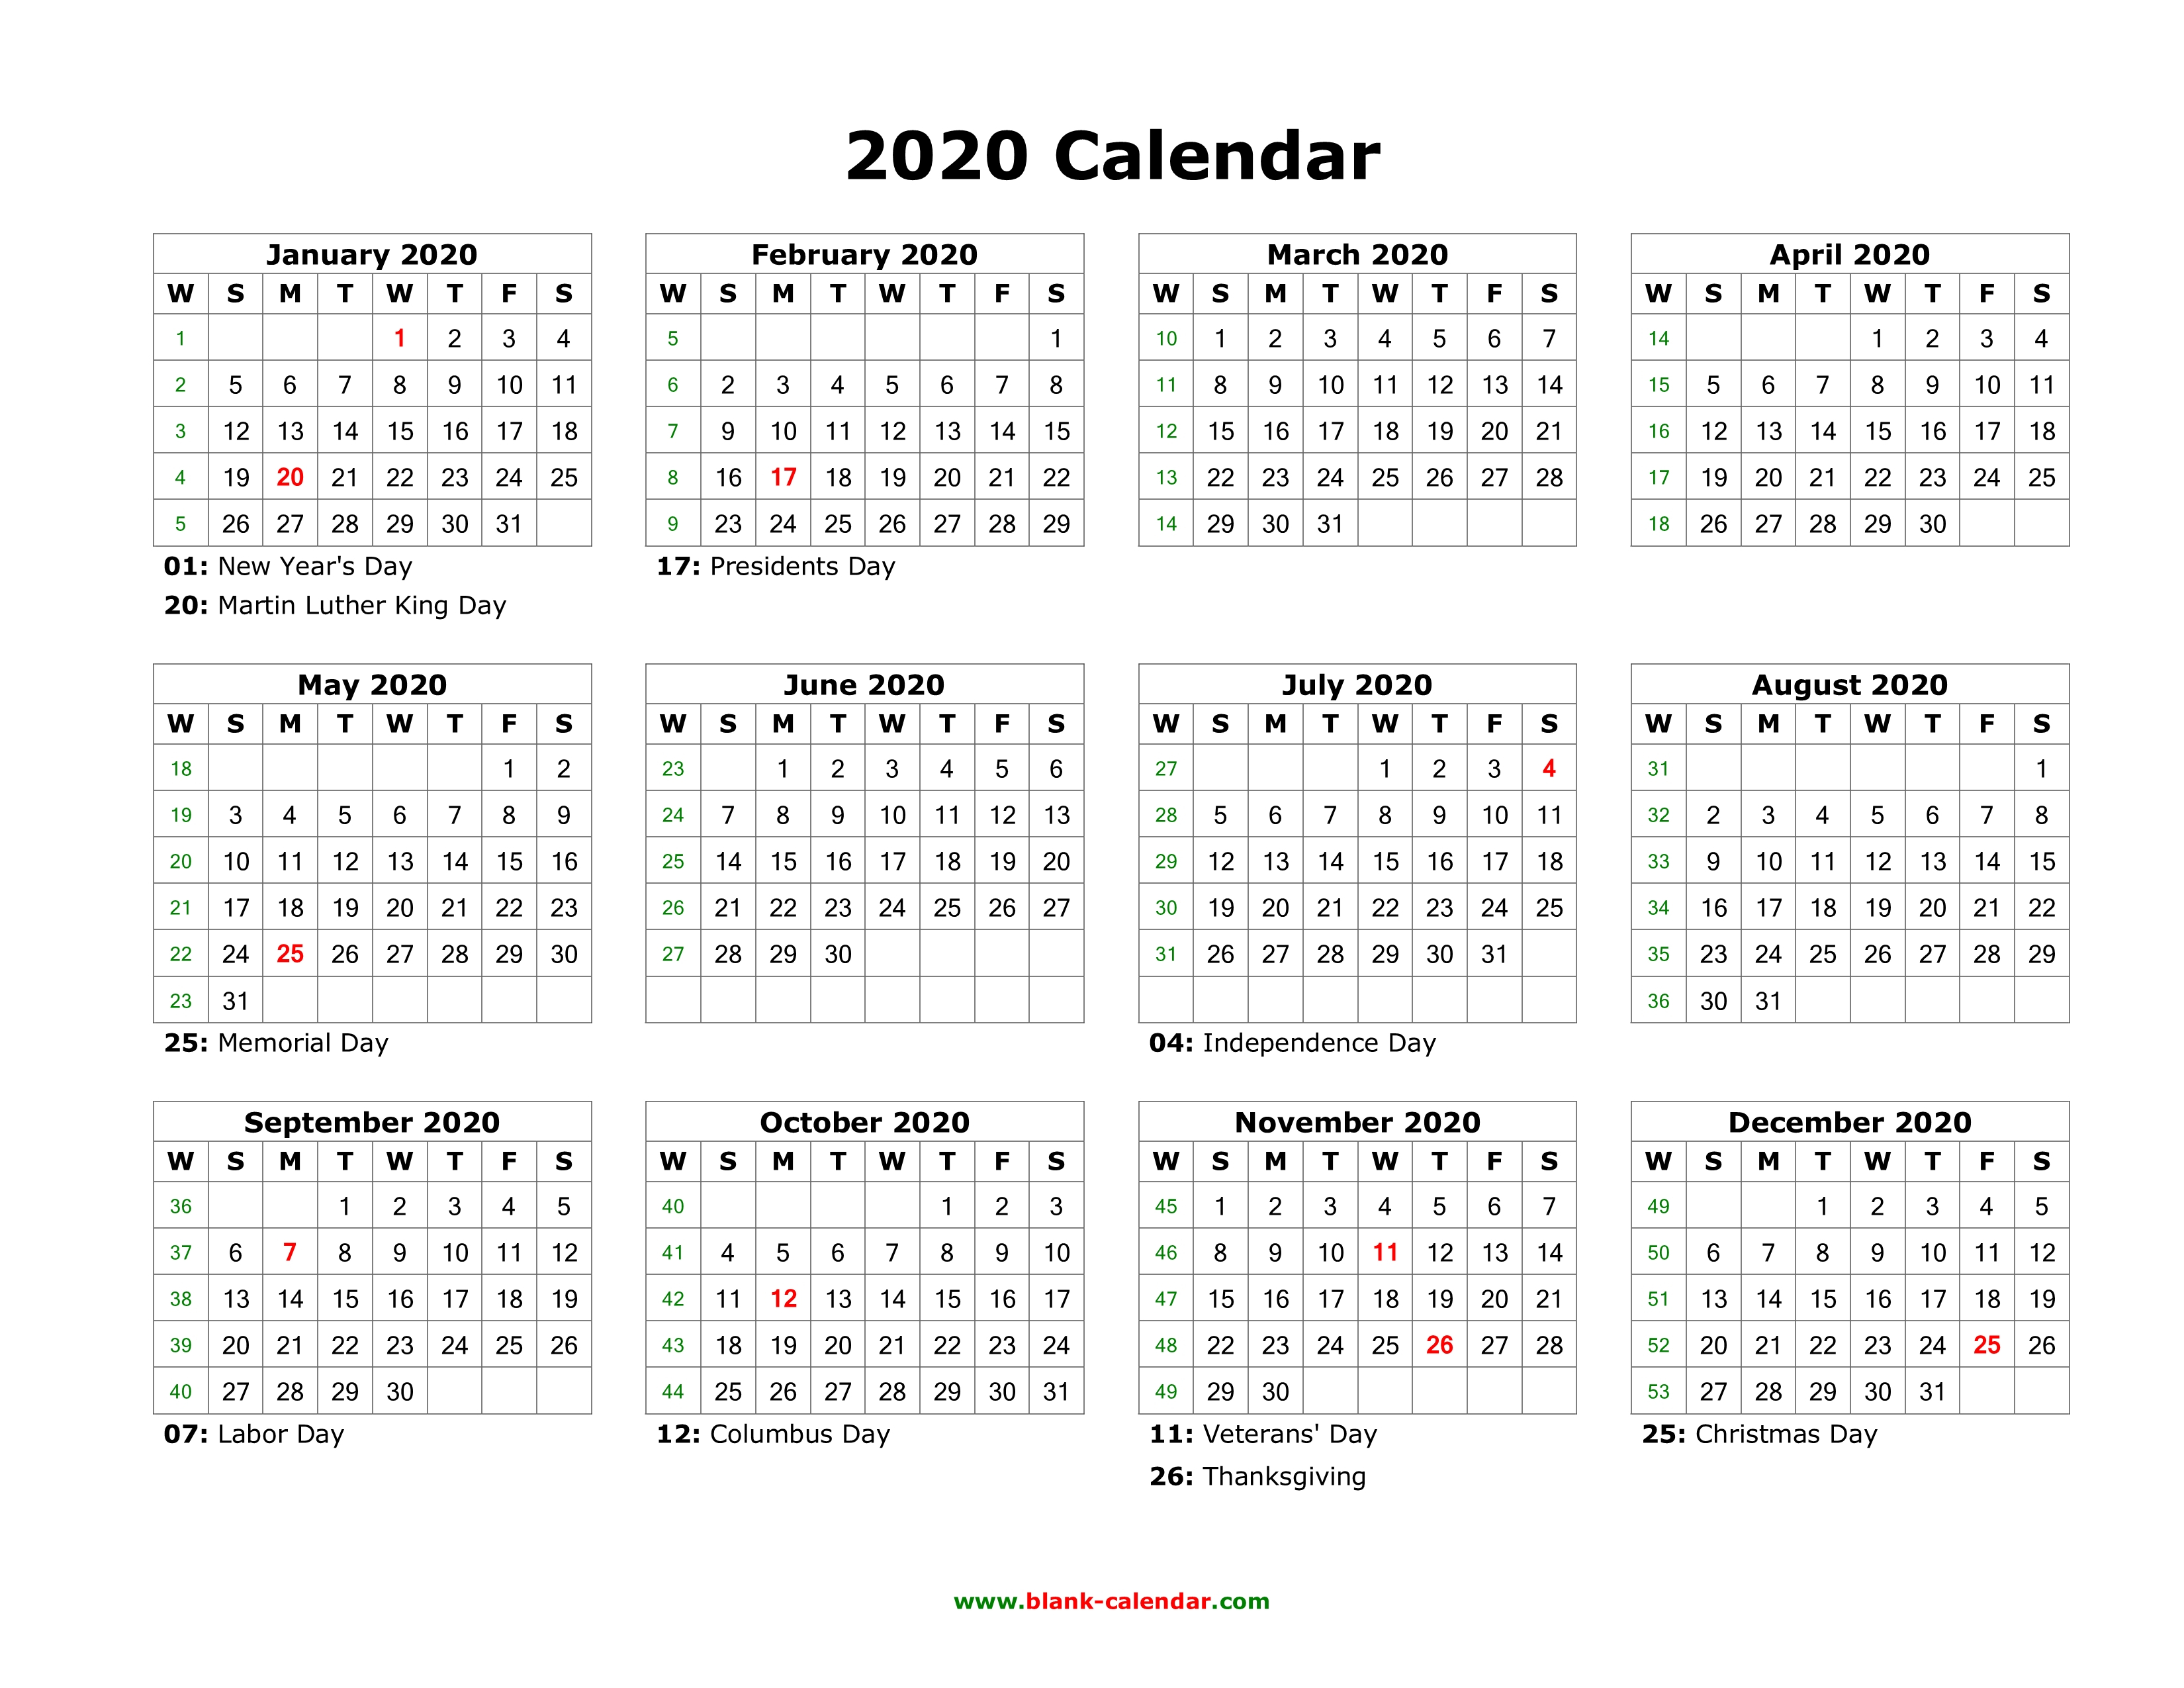 Blank Calendar 2020 | Free Download Calendar Templates Within 12 Mo Calendar Template One Page No Dates